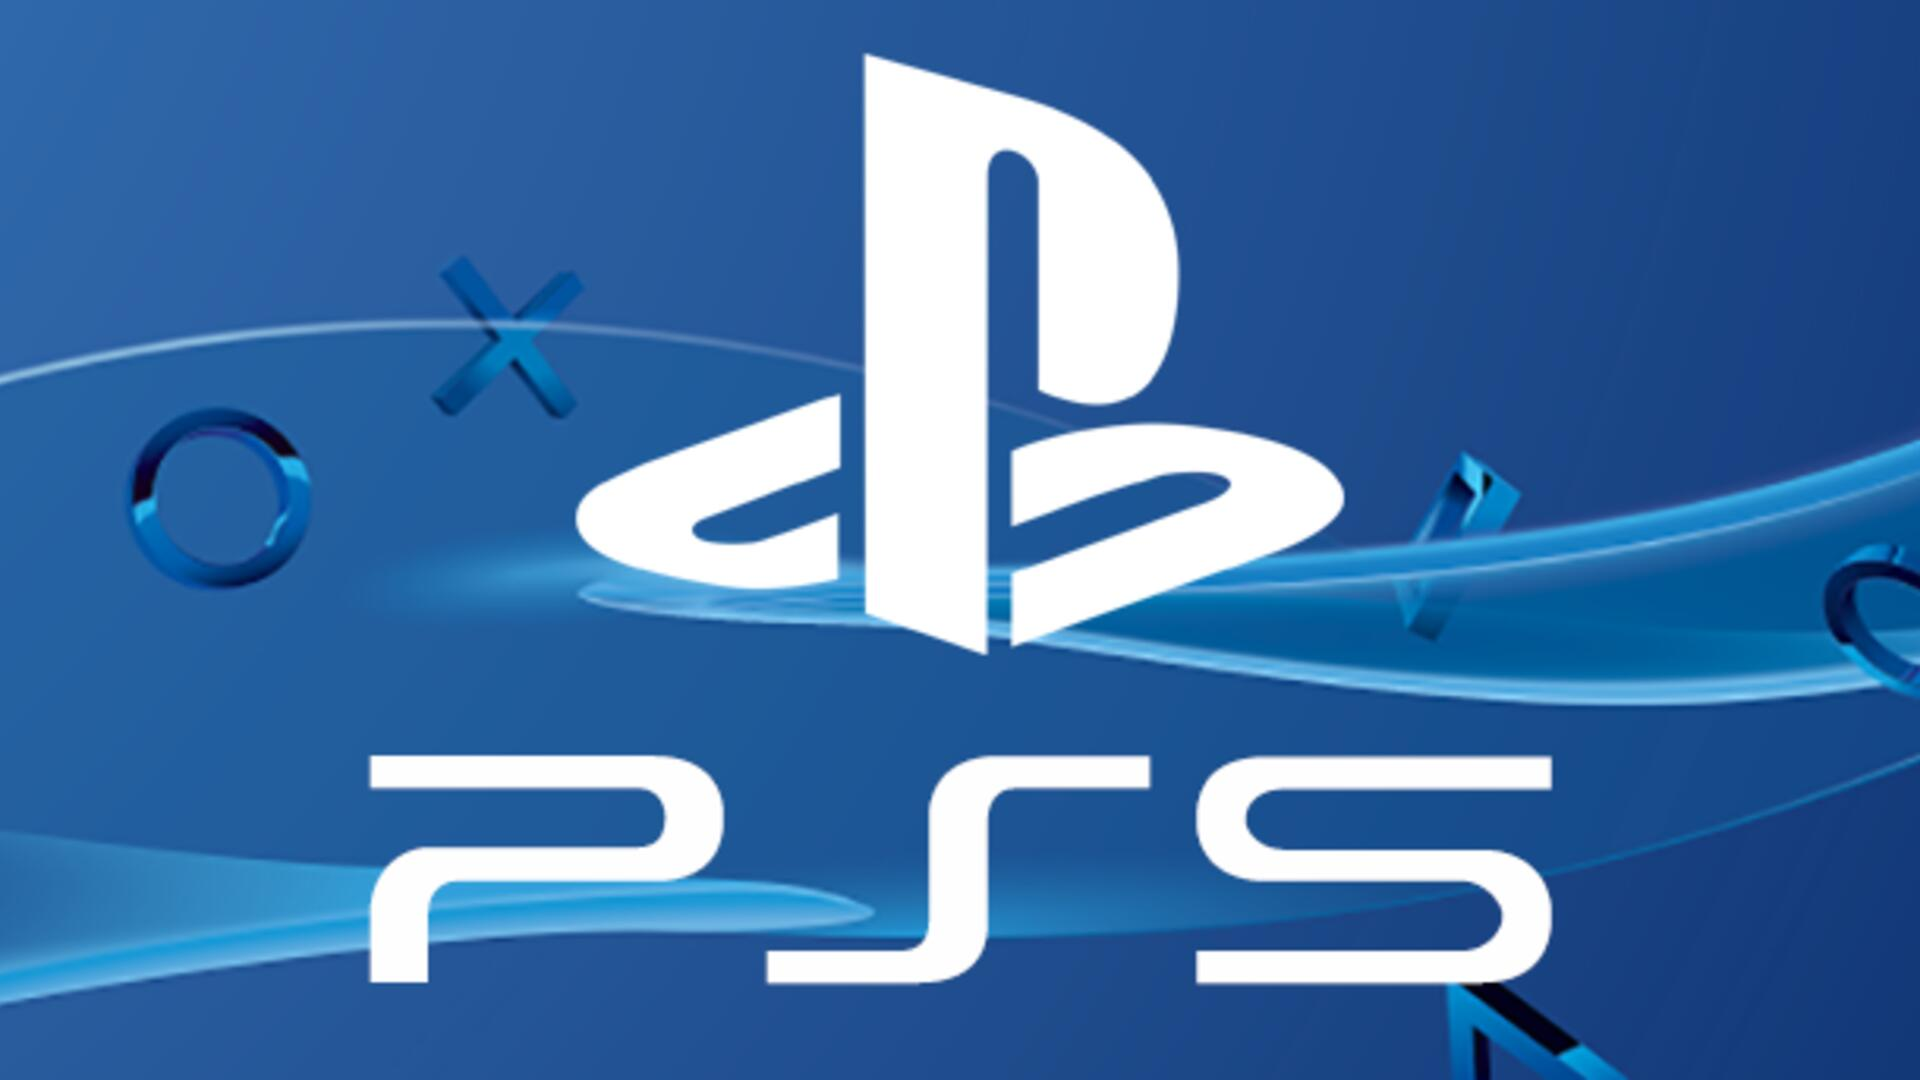 Report: Sony's Work on AMD's Ryzen CPU Could Be a Key Component for PS5